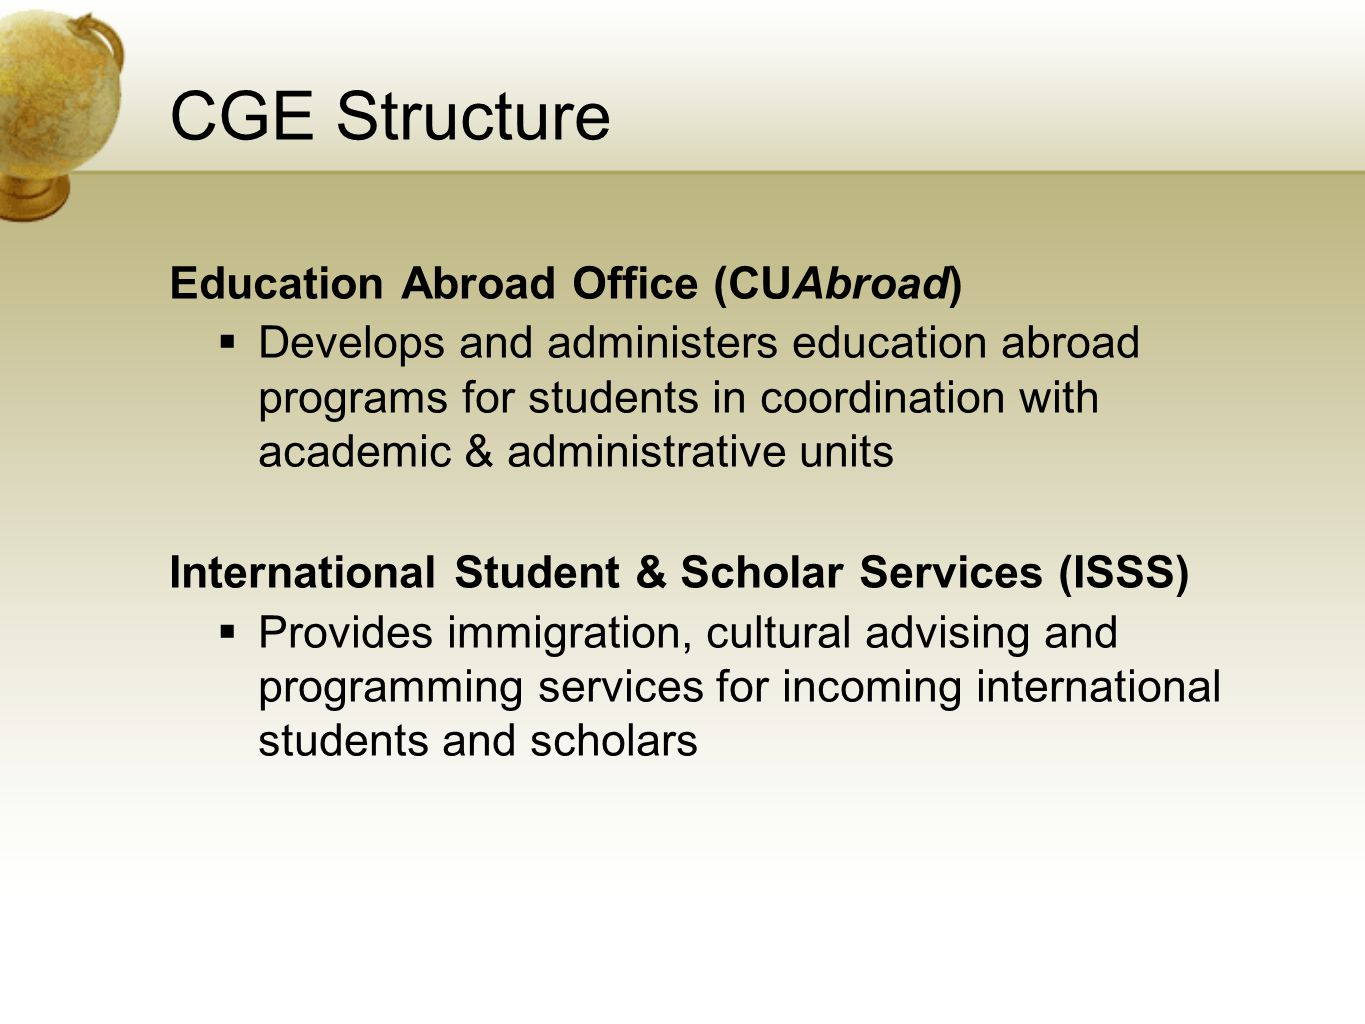 CGE Structure Education Abroad Office (CUAbroad)  Develops and administers education abroad programs for students in coordination with academic & administrative units International Student & Scholar Services (ISSS)  Provides immigration, cultural advising and programming services for incoming international students and scholars